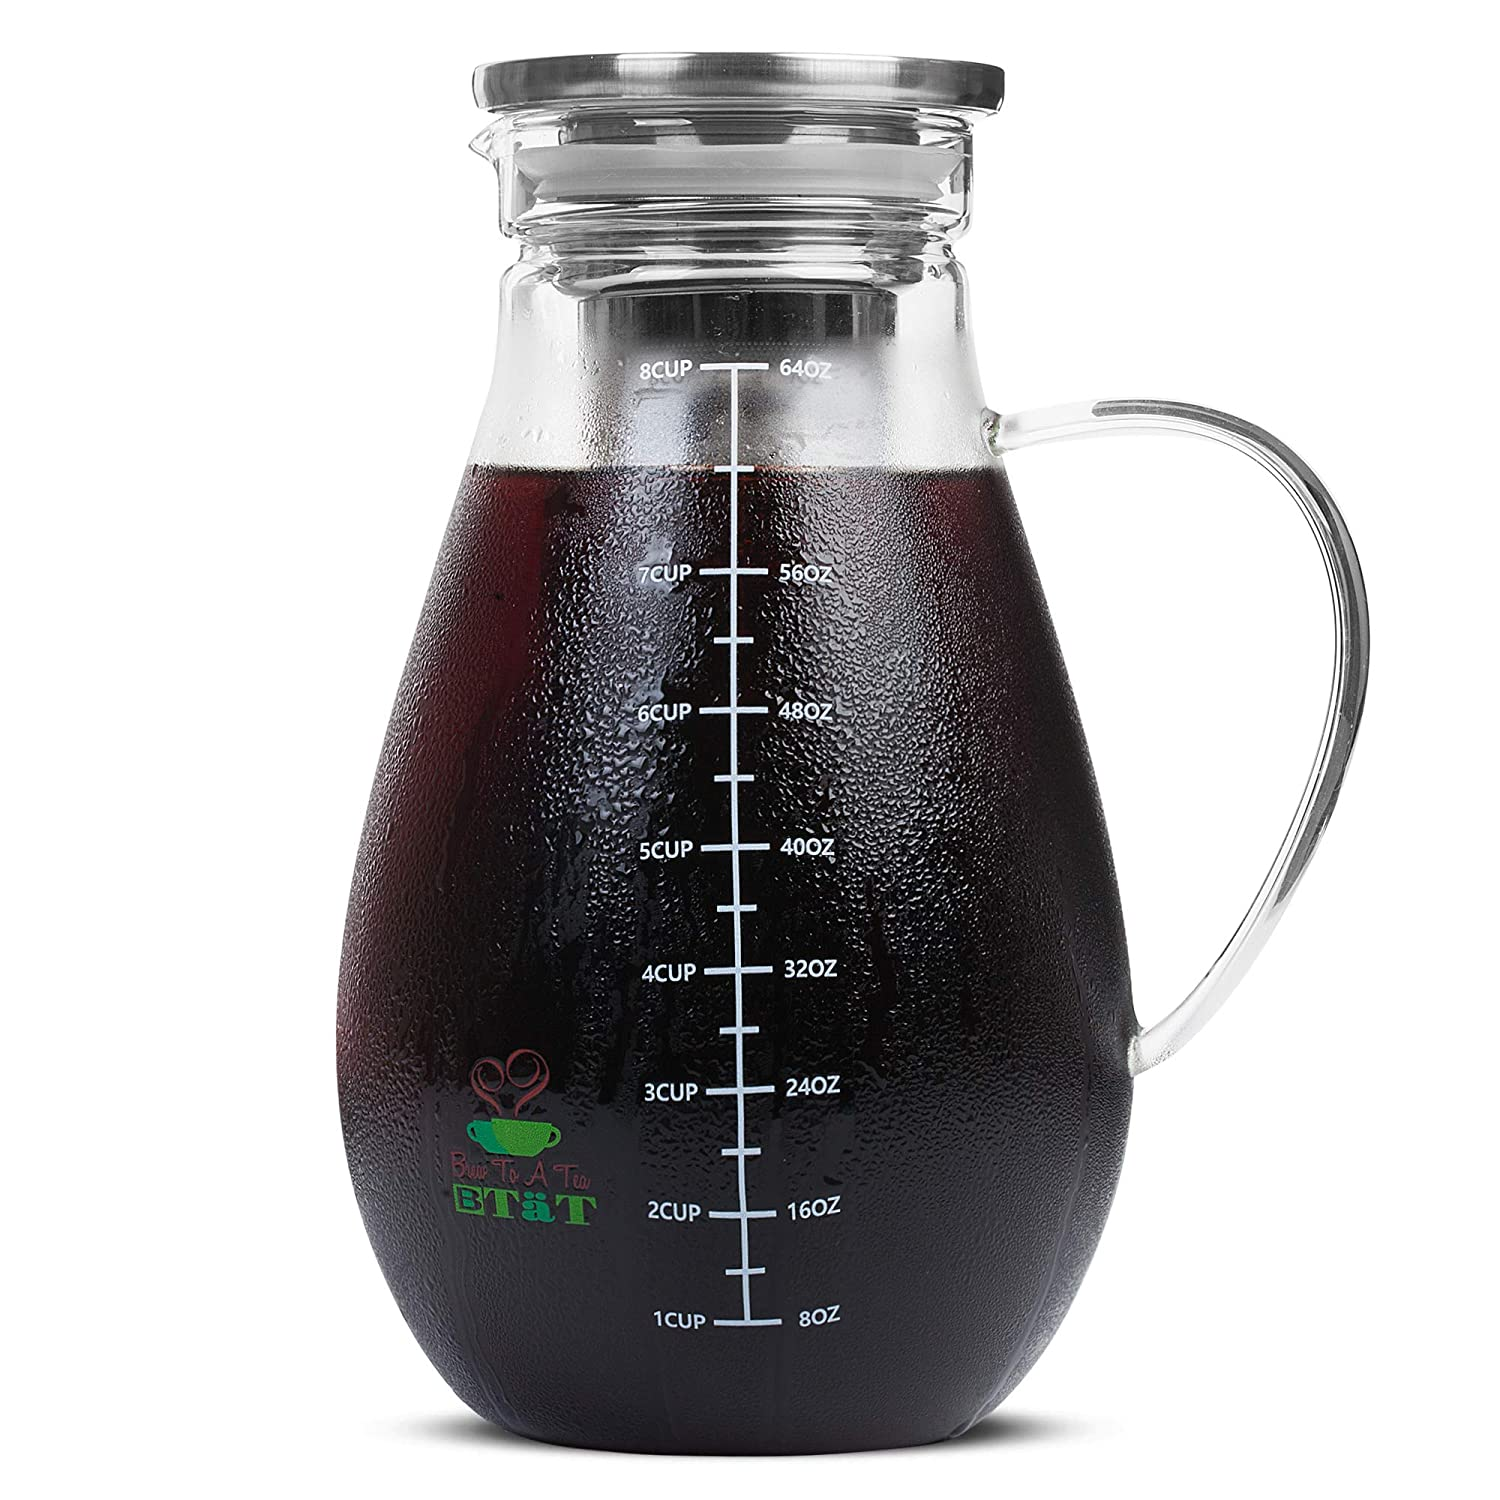 BTäT- Cold Brew Coffee Maker, Iced Coffee Maker, 2 Liter (2 Quart, 64 oz), Iced Tea Maker, Cold Brew Maker, Tea Pitcher, Coffee Accessories, Iced Tea Pitcher, Cold Brew System, Cold Brew Pitcher